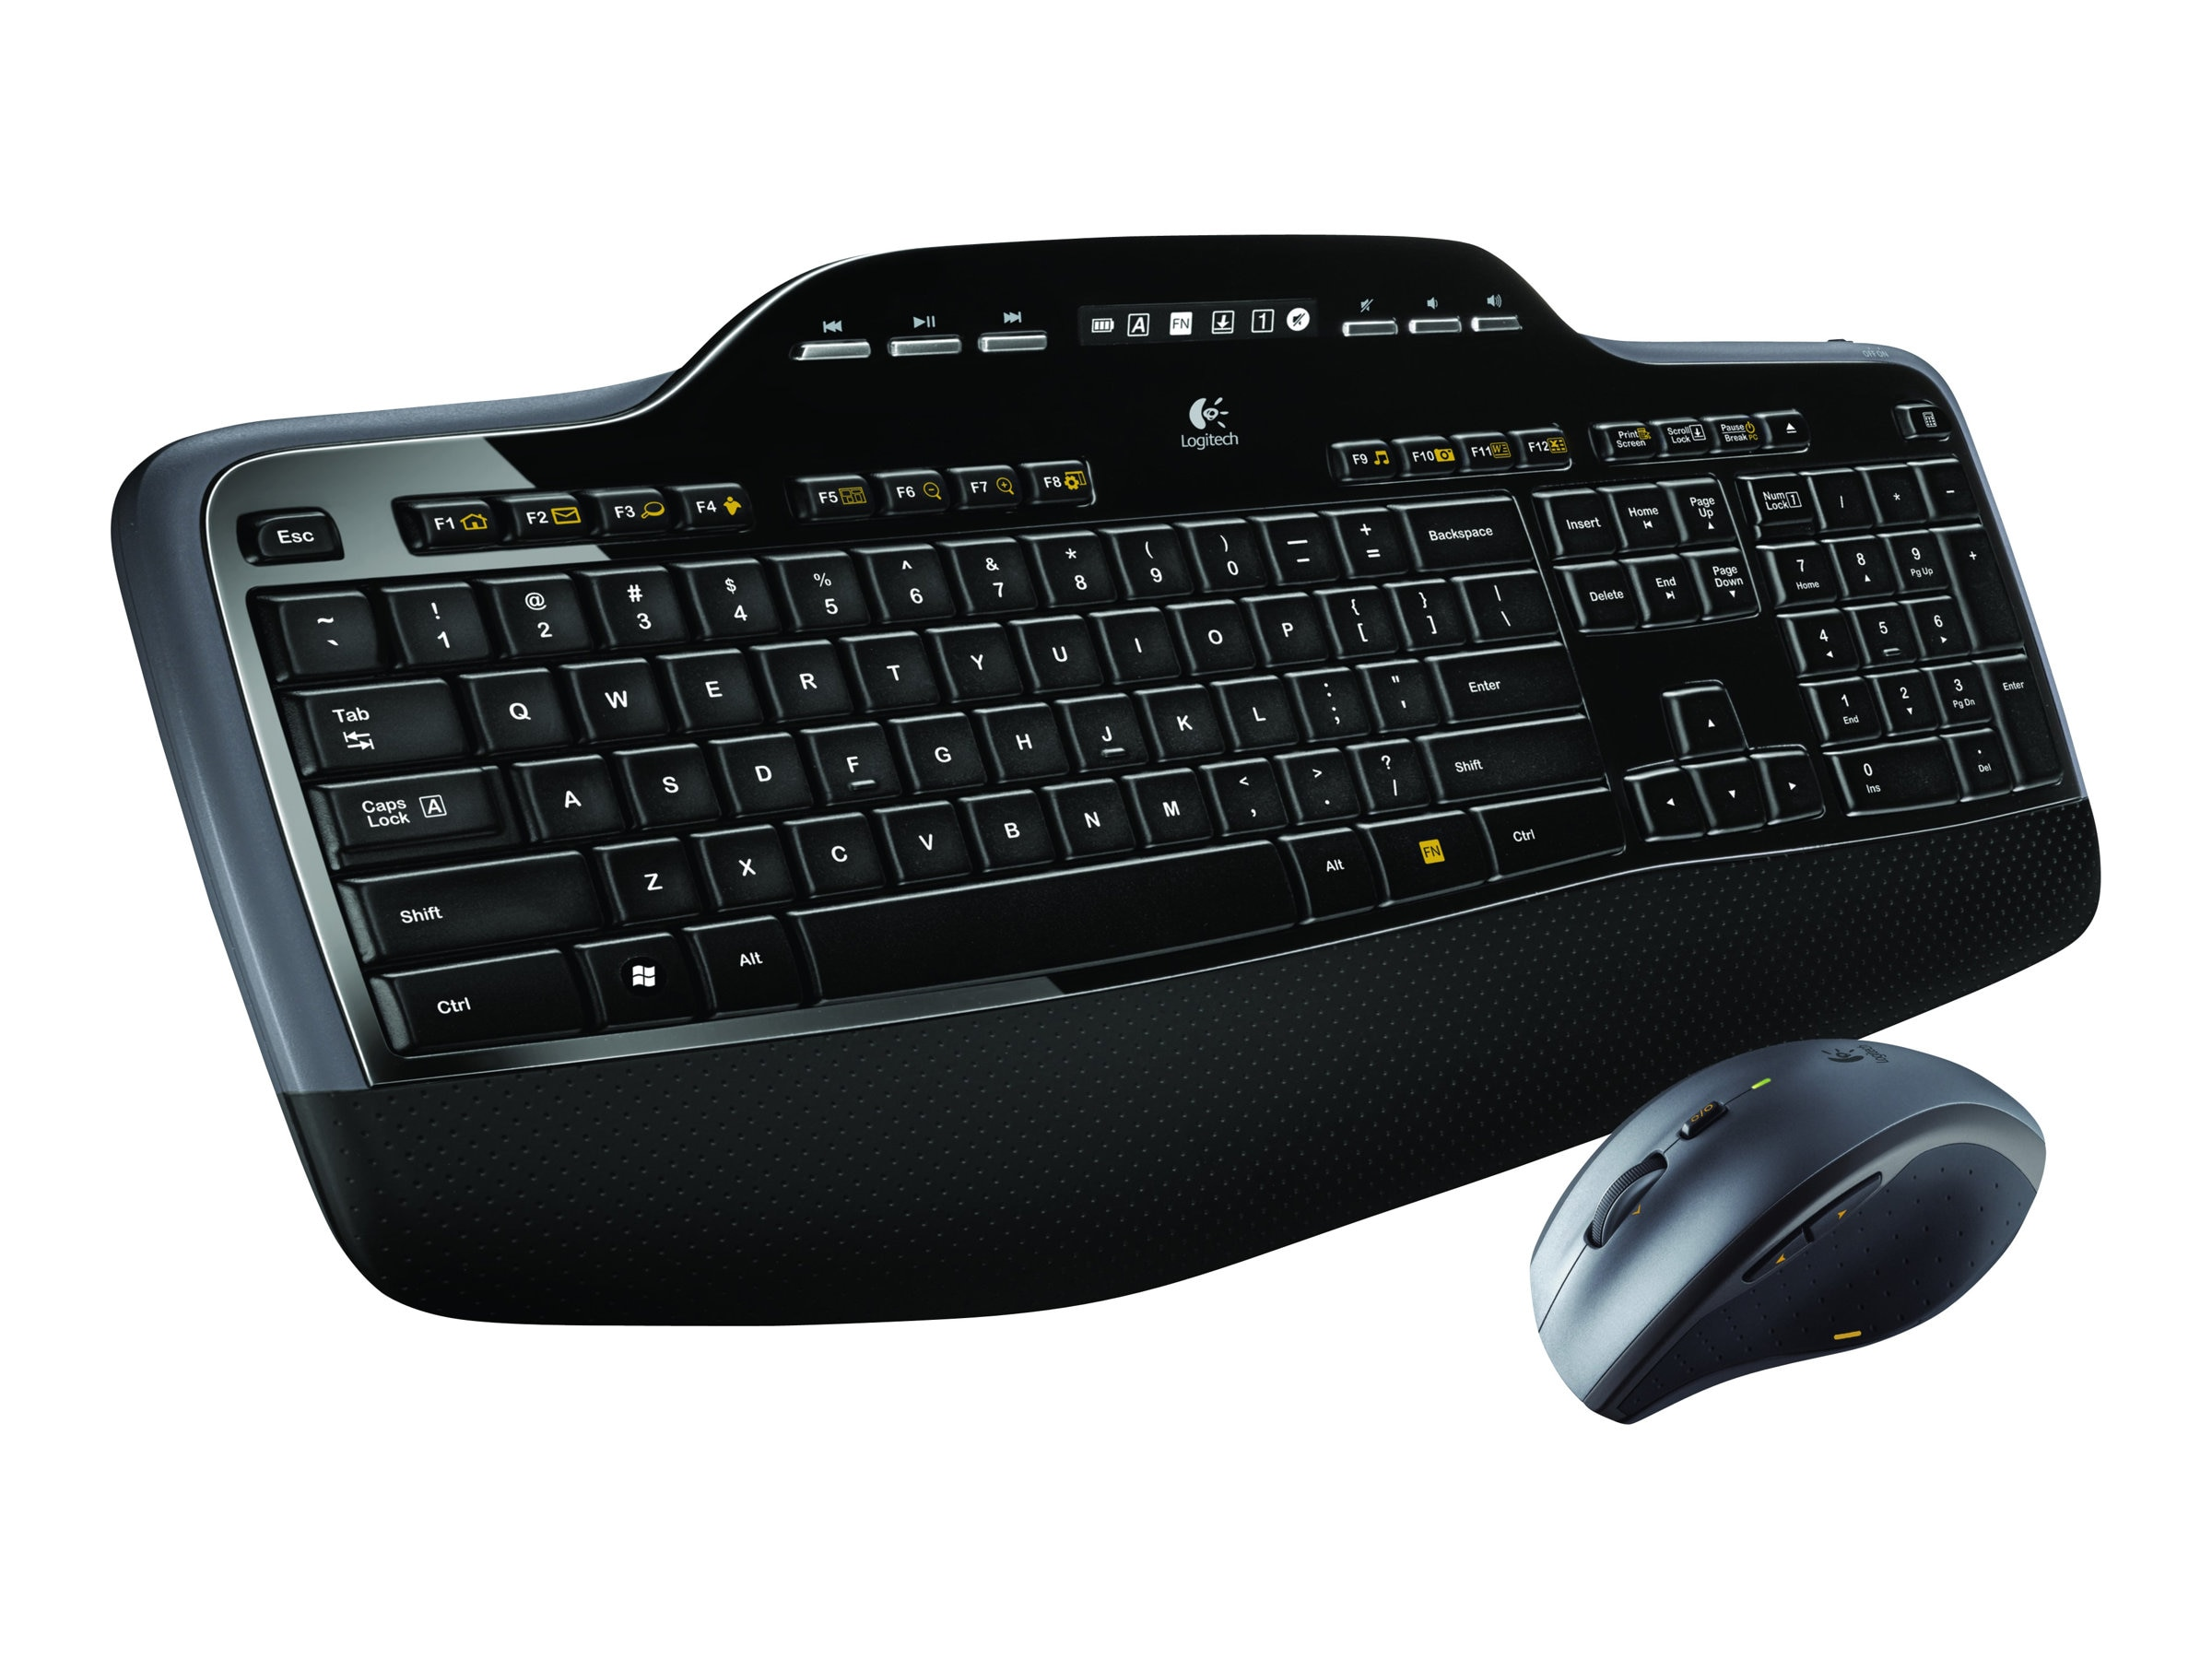 Logitech Wireless Desktop MK710, 920-002416, 11030310, Keyboard/Mouse Combinations